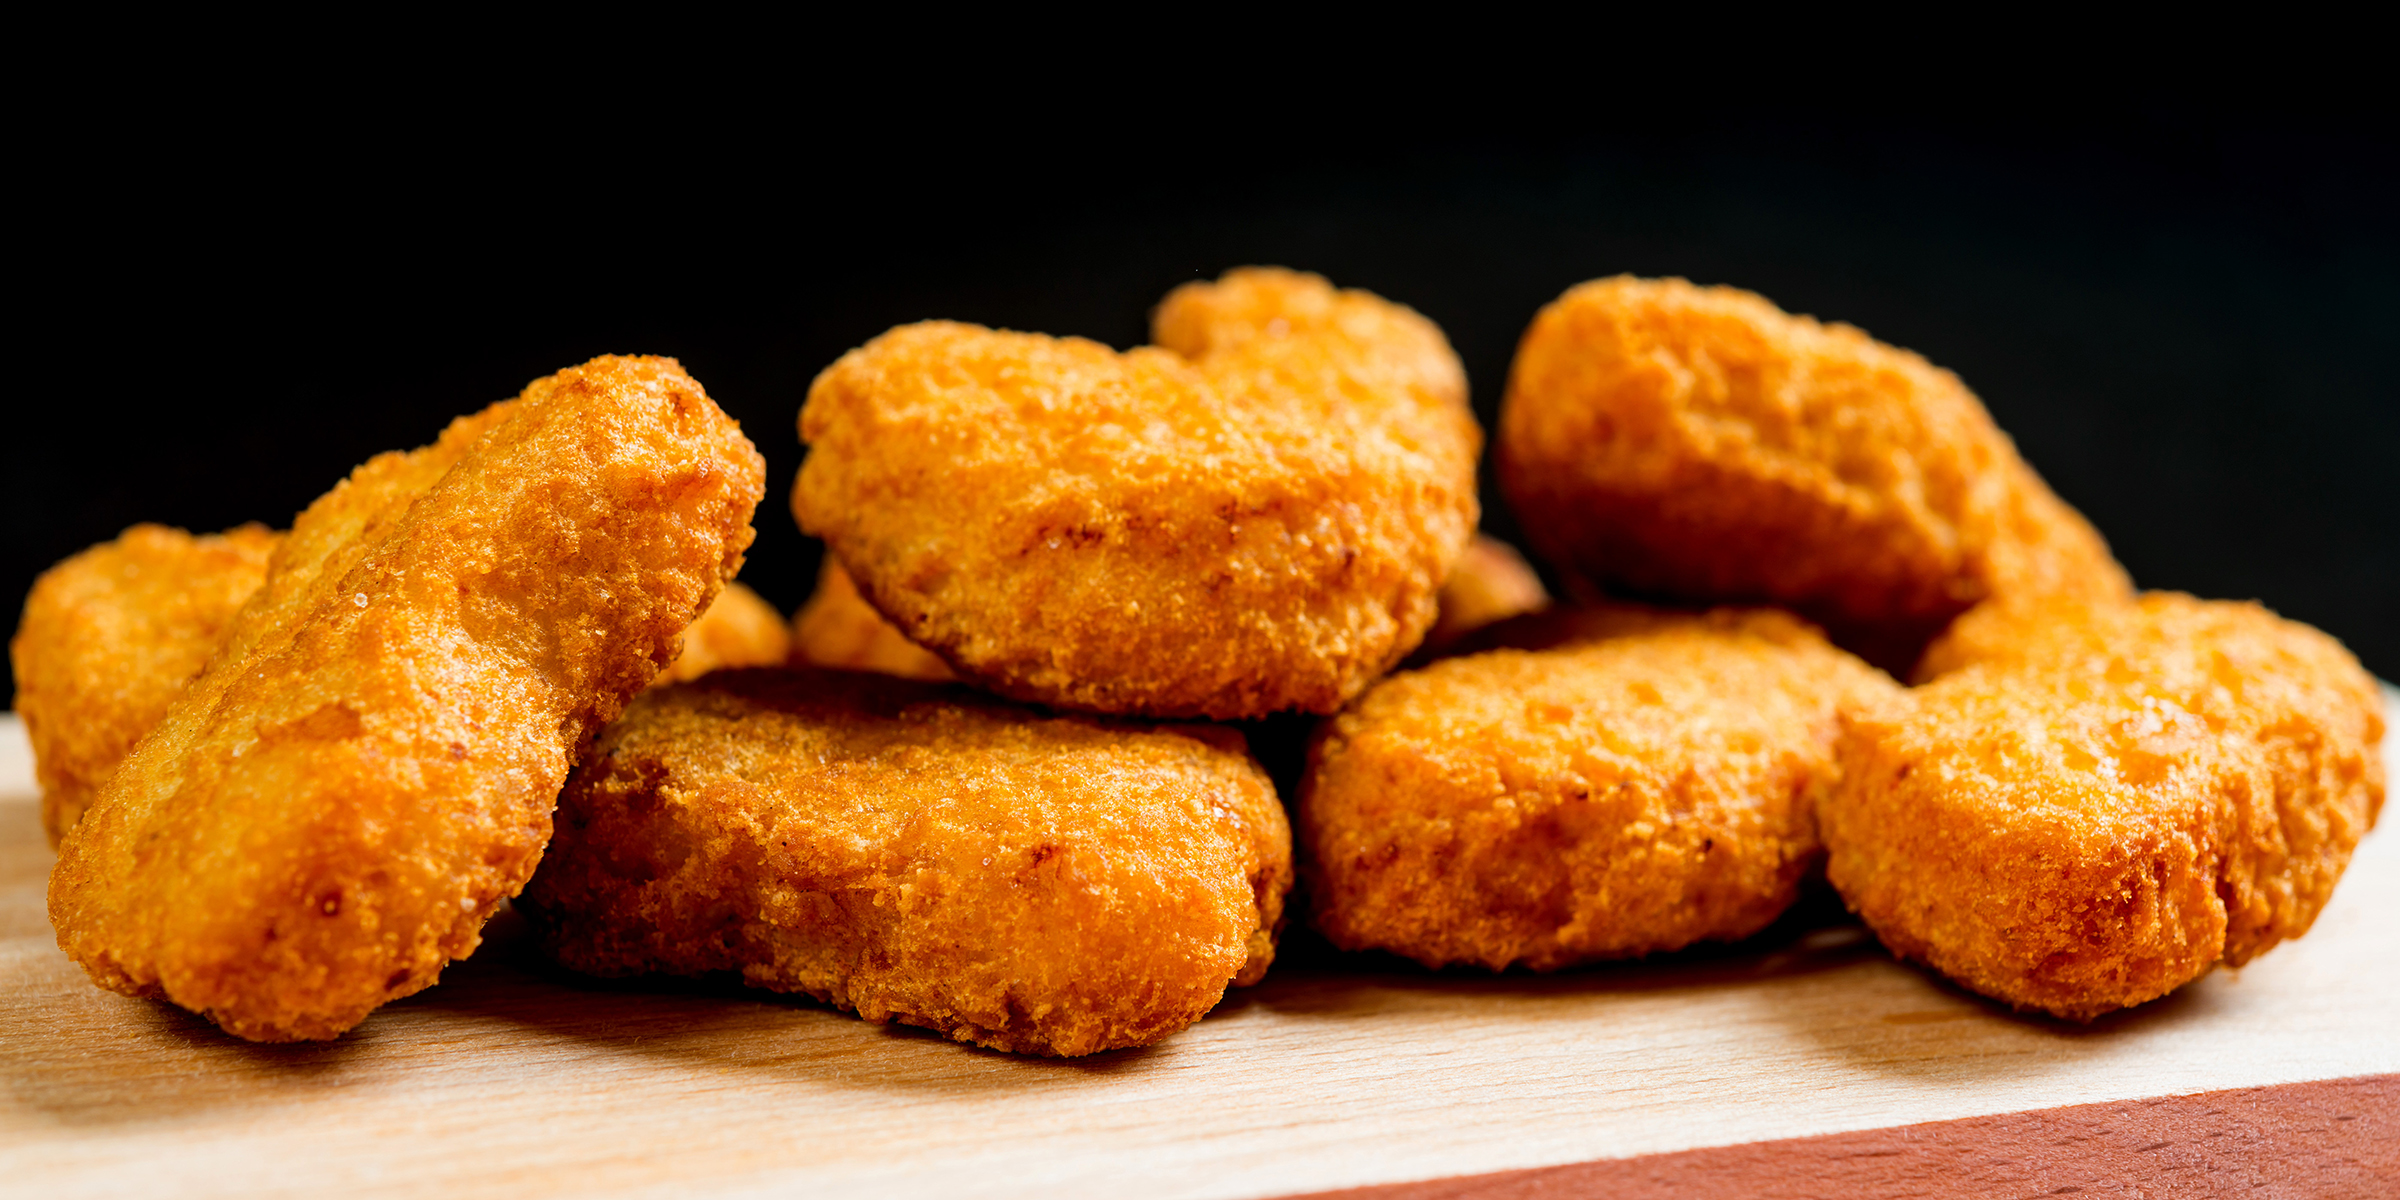 Tyson Recalls 36,000 Pounds of Chicken Nuggets and I Have no Idea Why